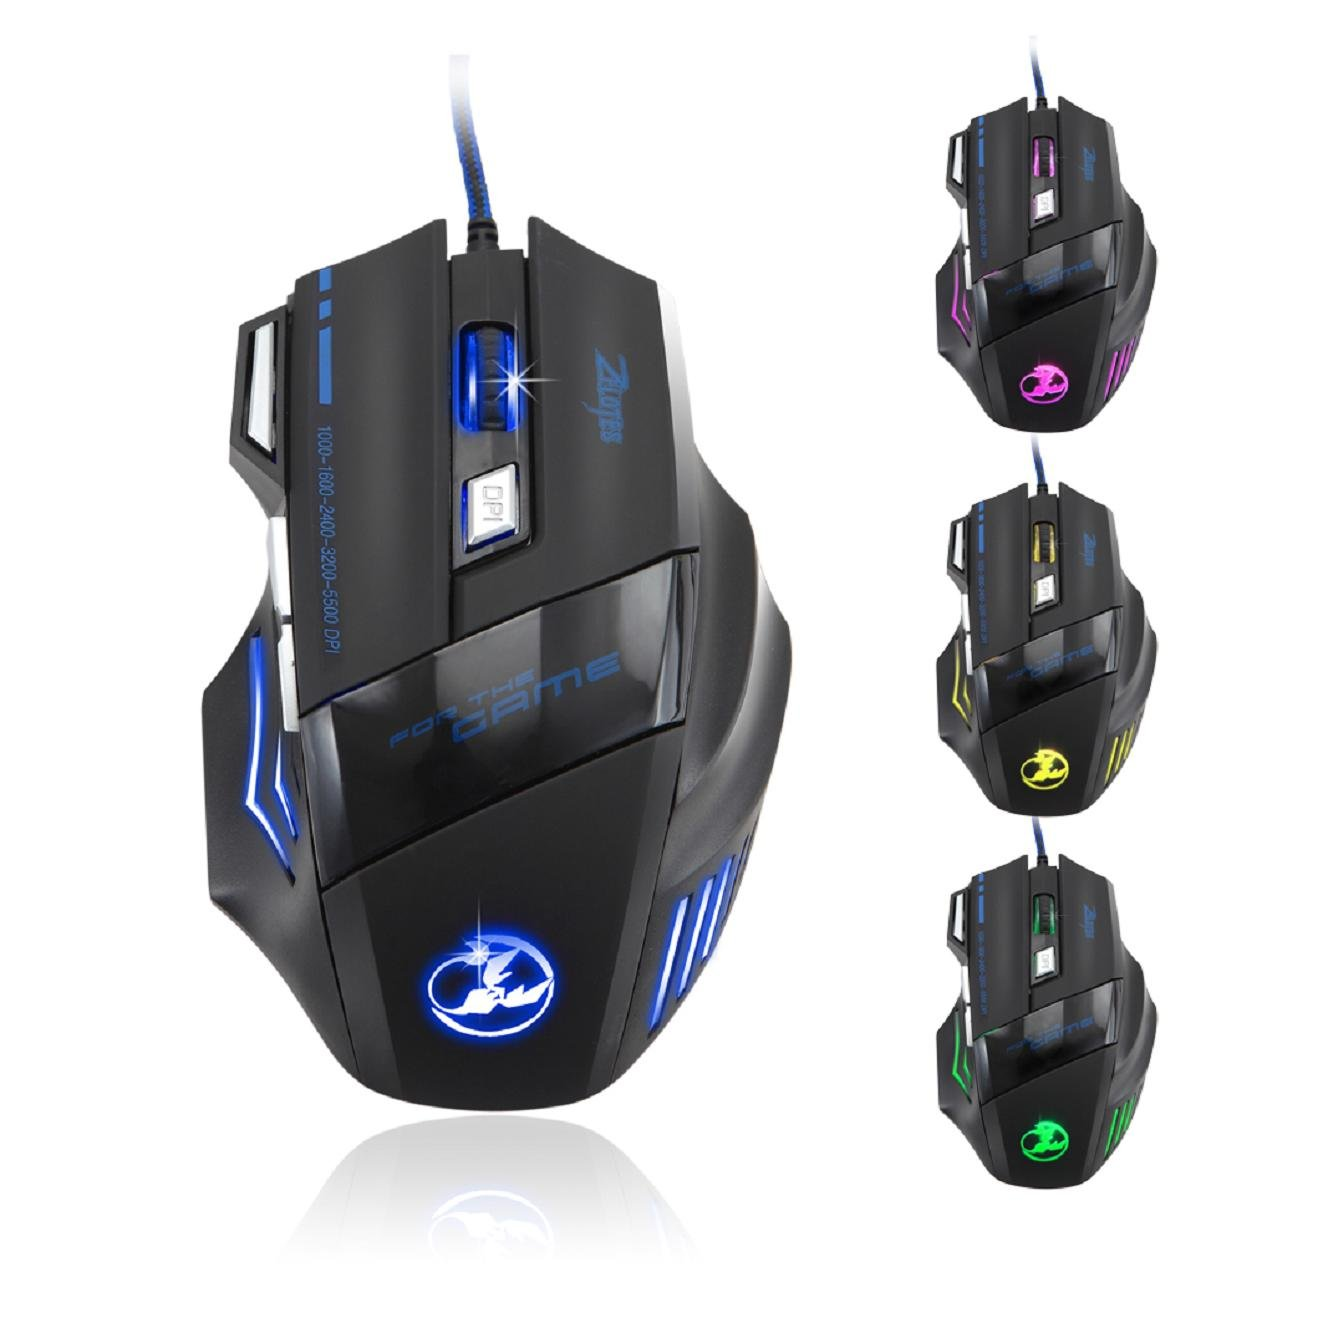 dpi gaming mice